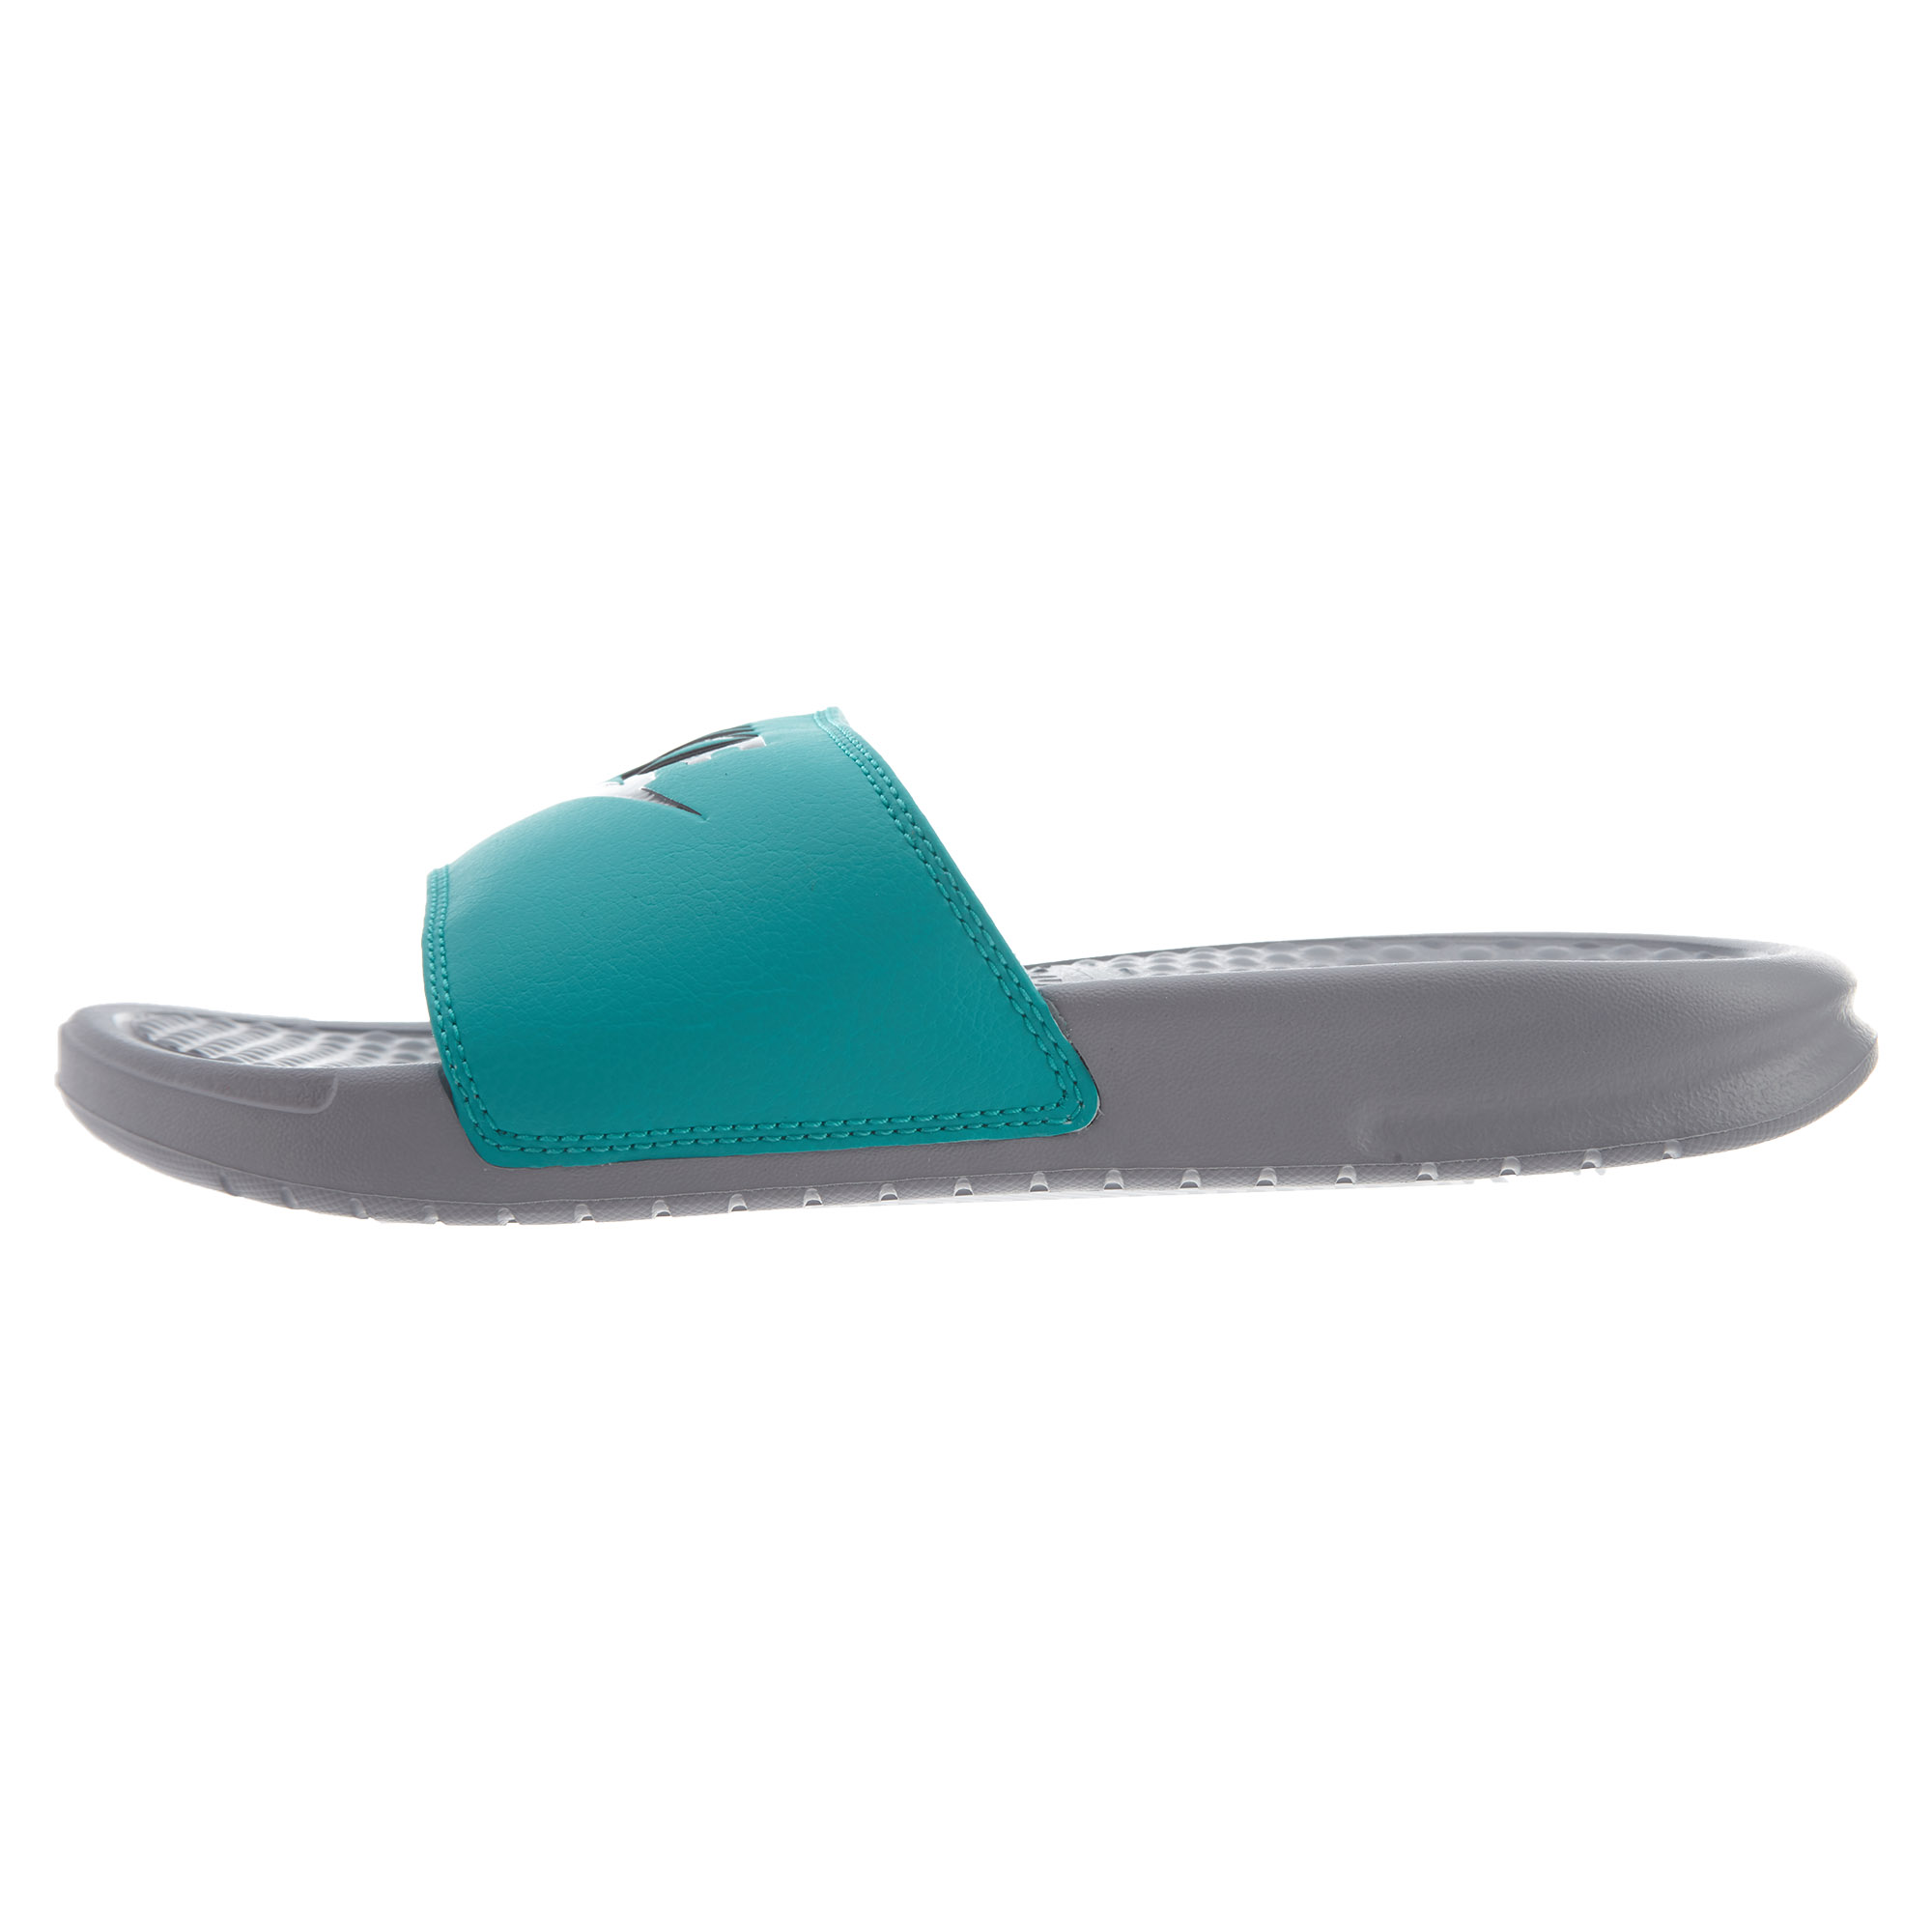 e63bb1942eb8 Details about Nike Womens Benassi JDI Slide Sandals 343881-305